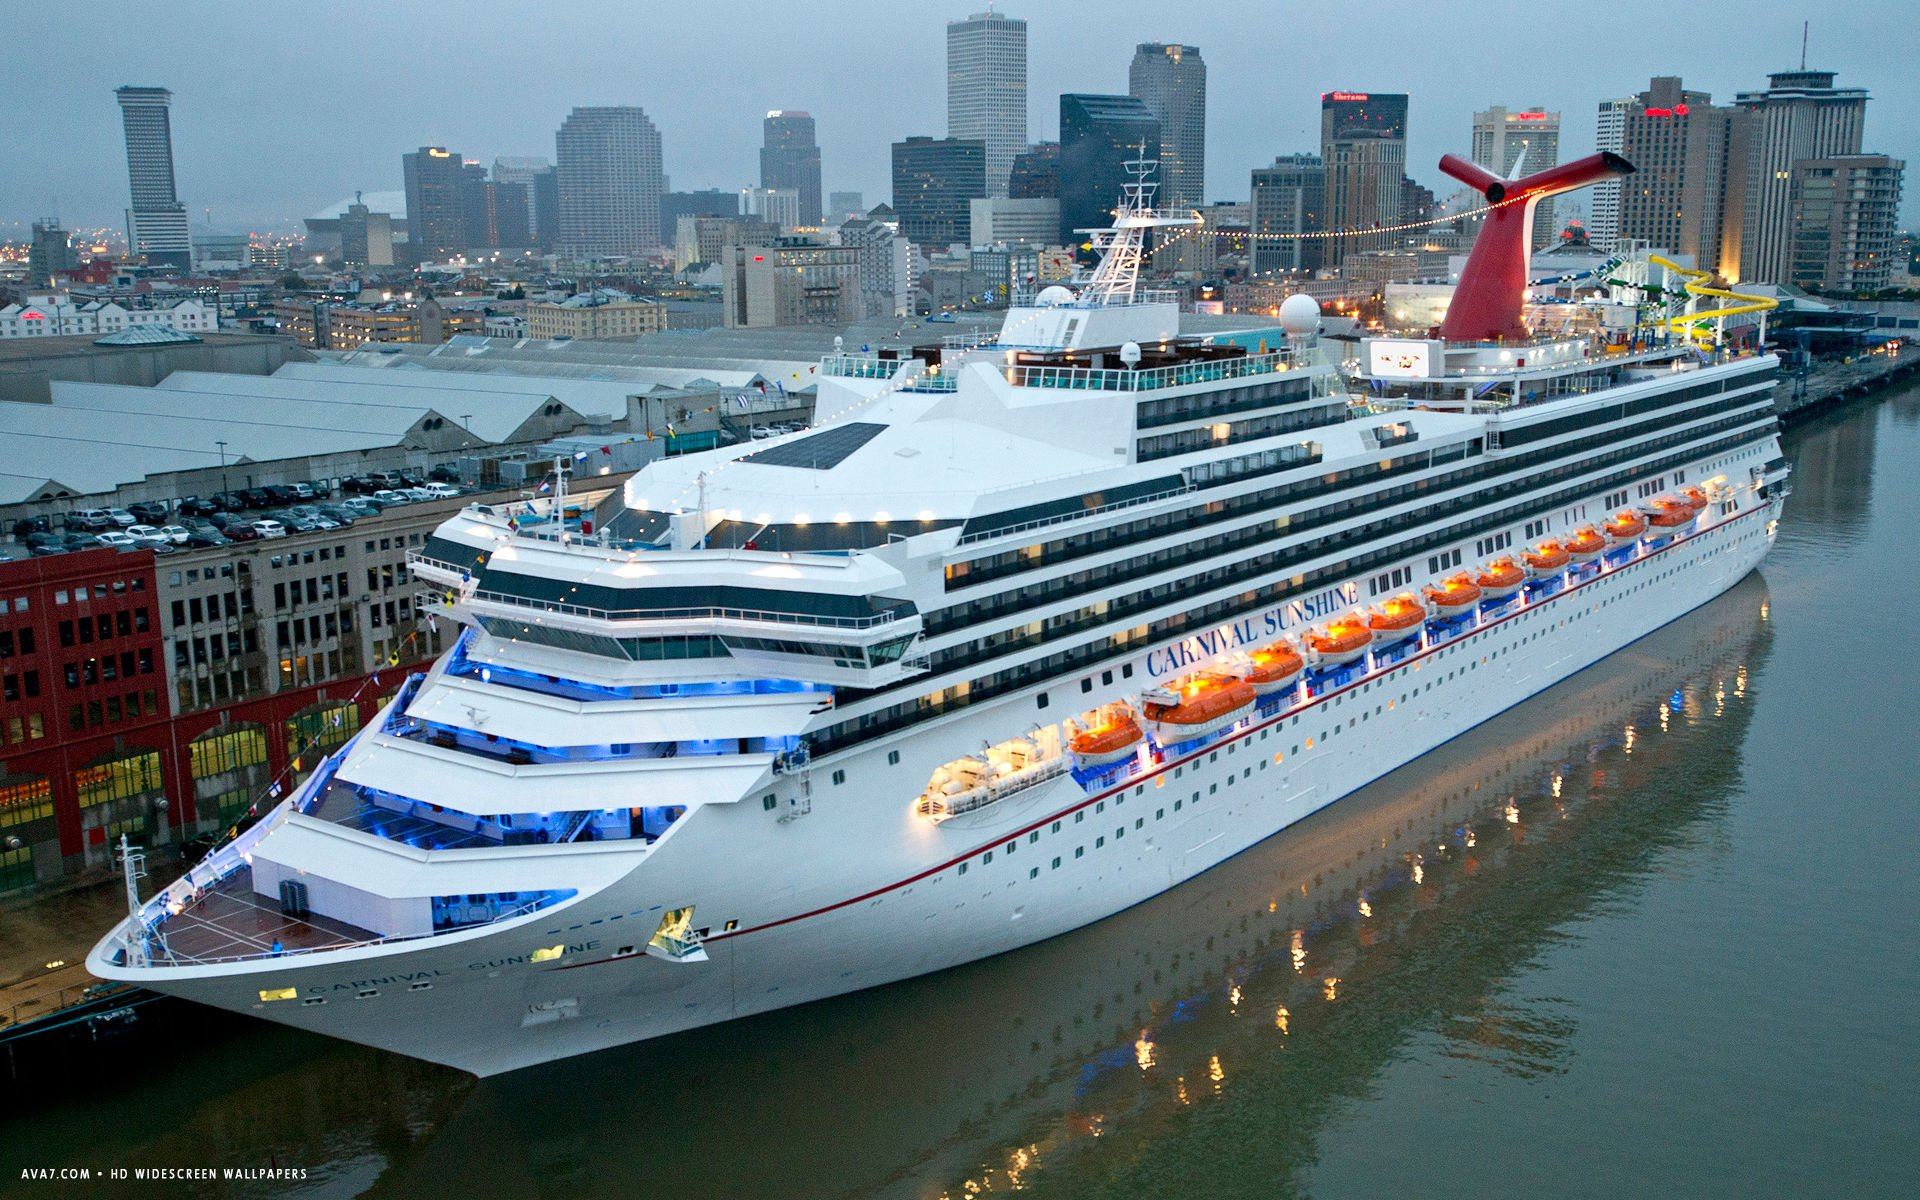 carnival sunshine cruise ship hd widescreen wallpaper cruise ships 1920x1200